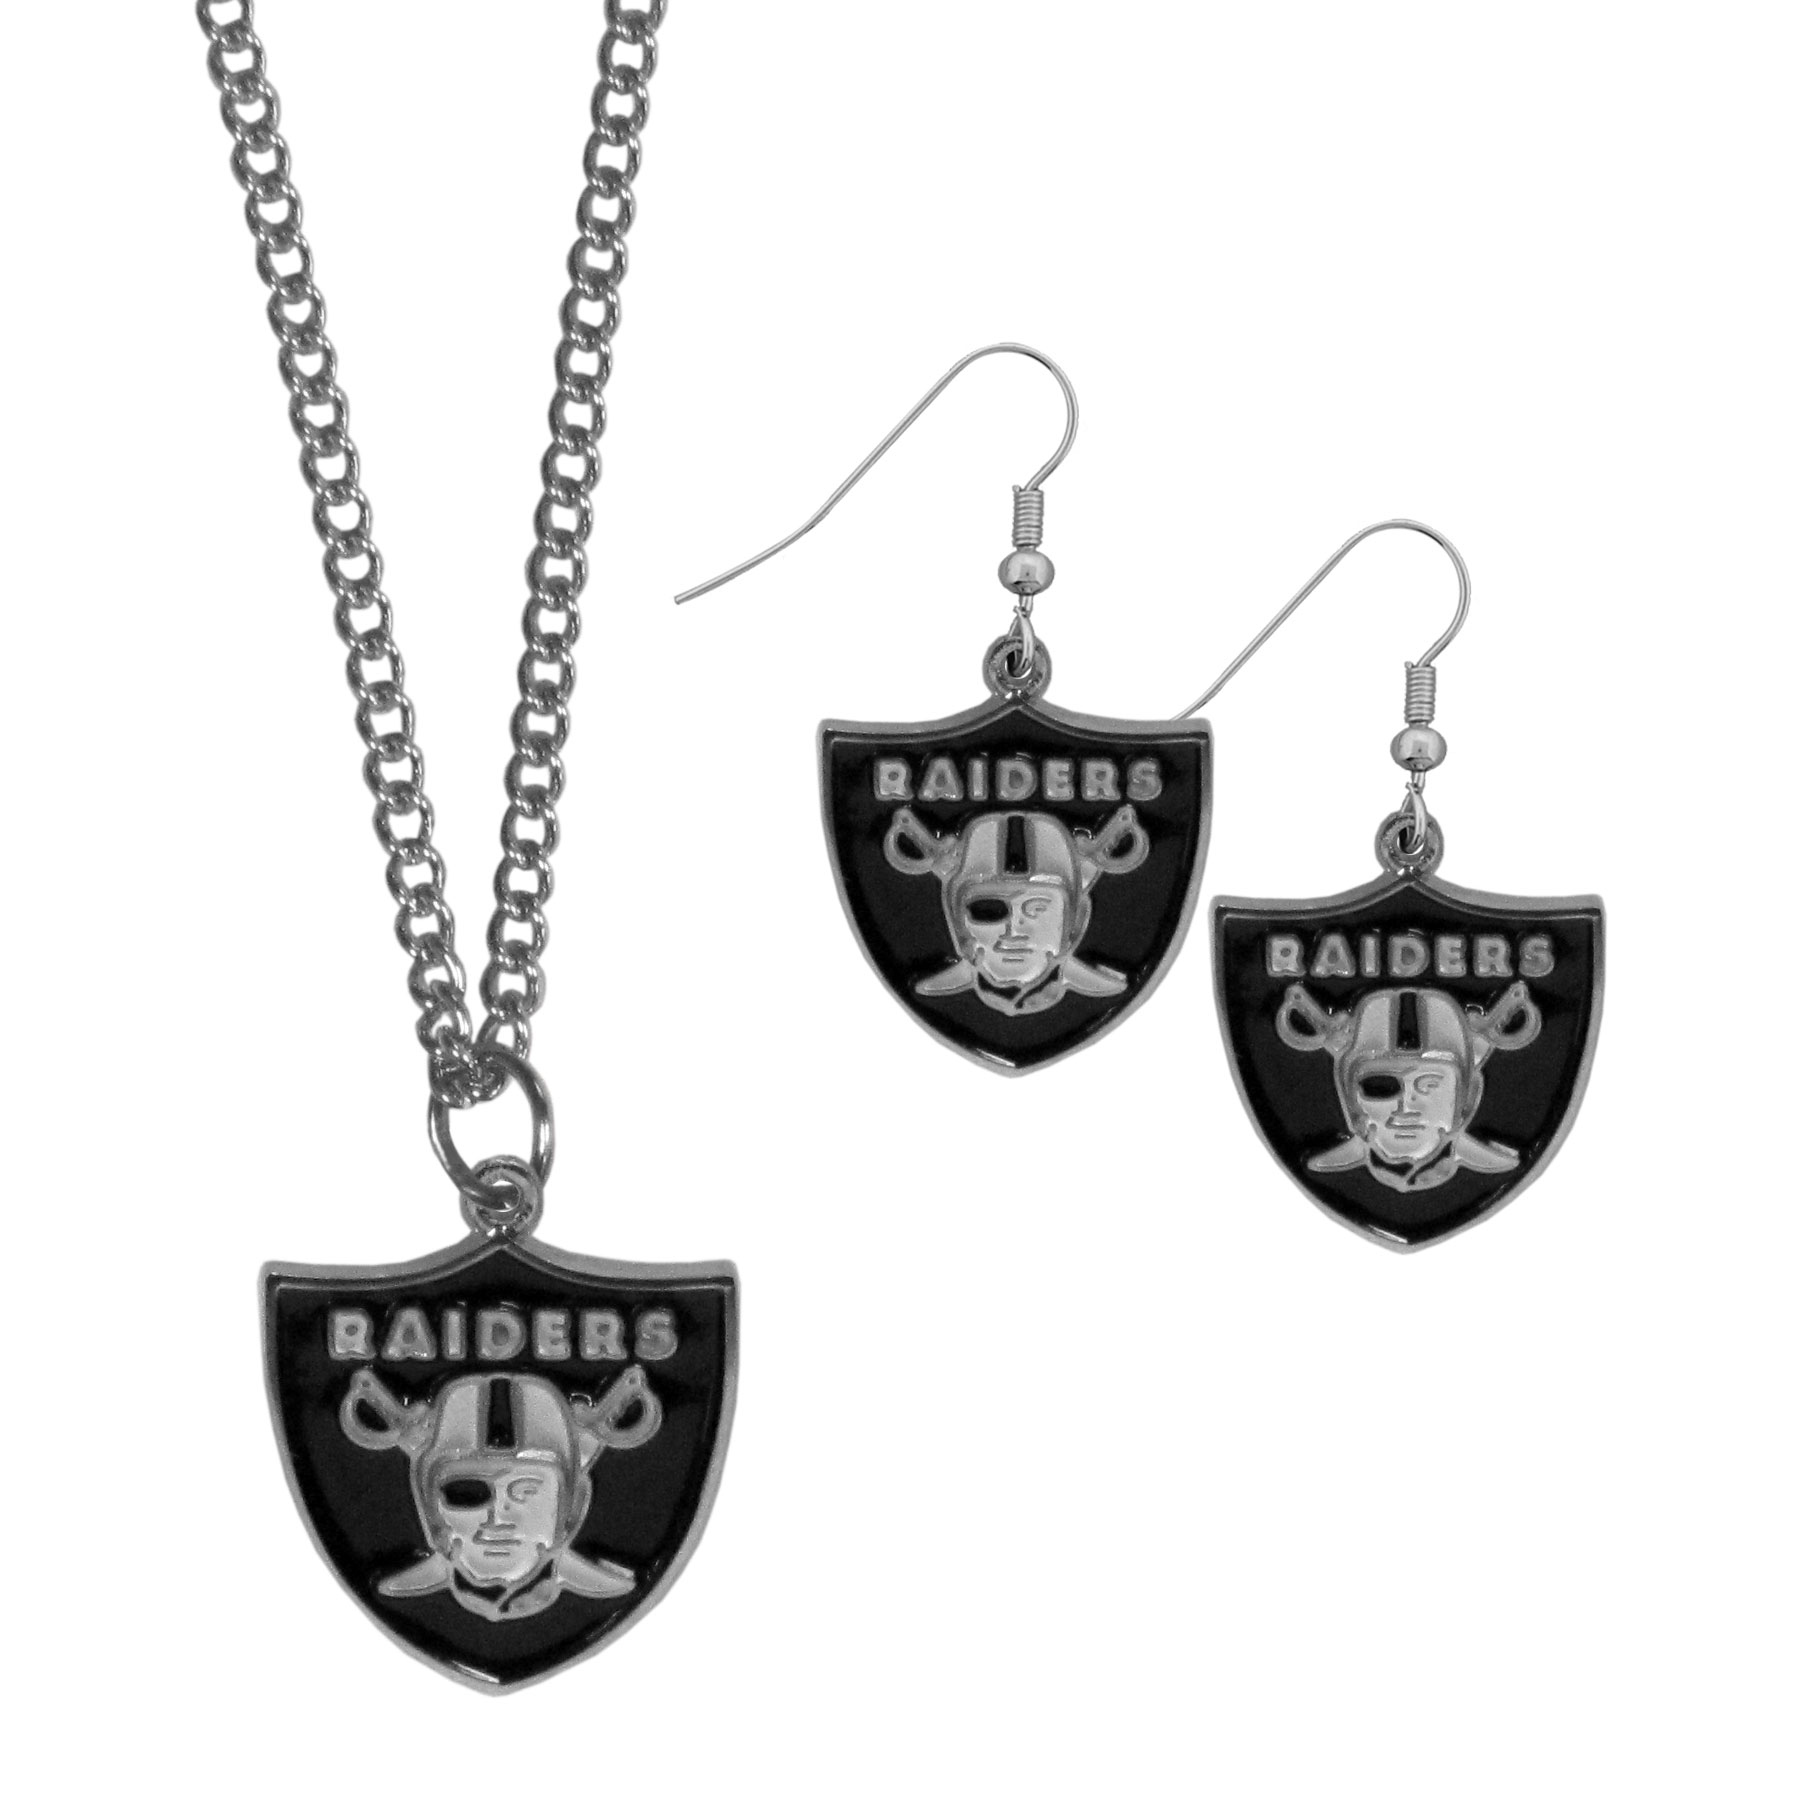 Oakland Raiders Dangle Earrings and Chain Necklace Set - This classic jewelry set contains are most popular Oakland Raiders dangle earrings and 22 inch chain necklace. The trendy, dangle earrings are lightweight and feature a fully cast metal team charm with enameled team colors. The matching necklace completes this fashion forward combo and is a spirited set that is perfect for game day but nice enough for everyday.